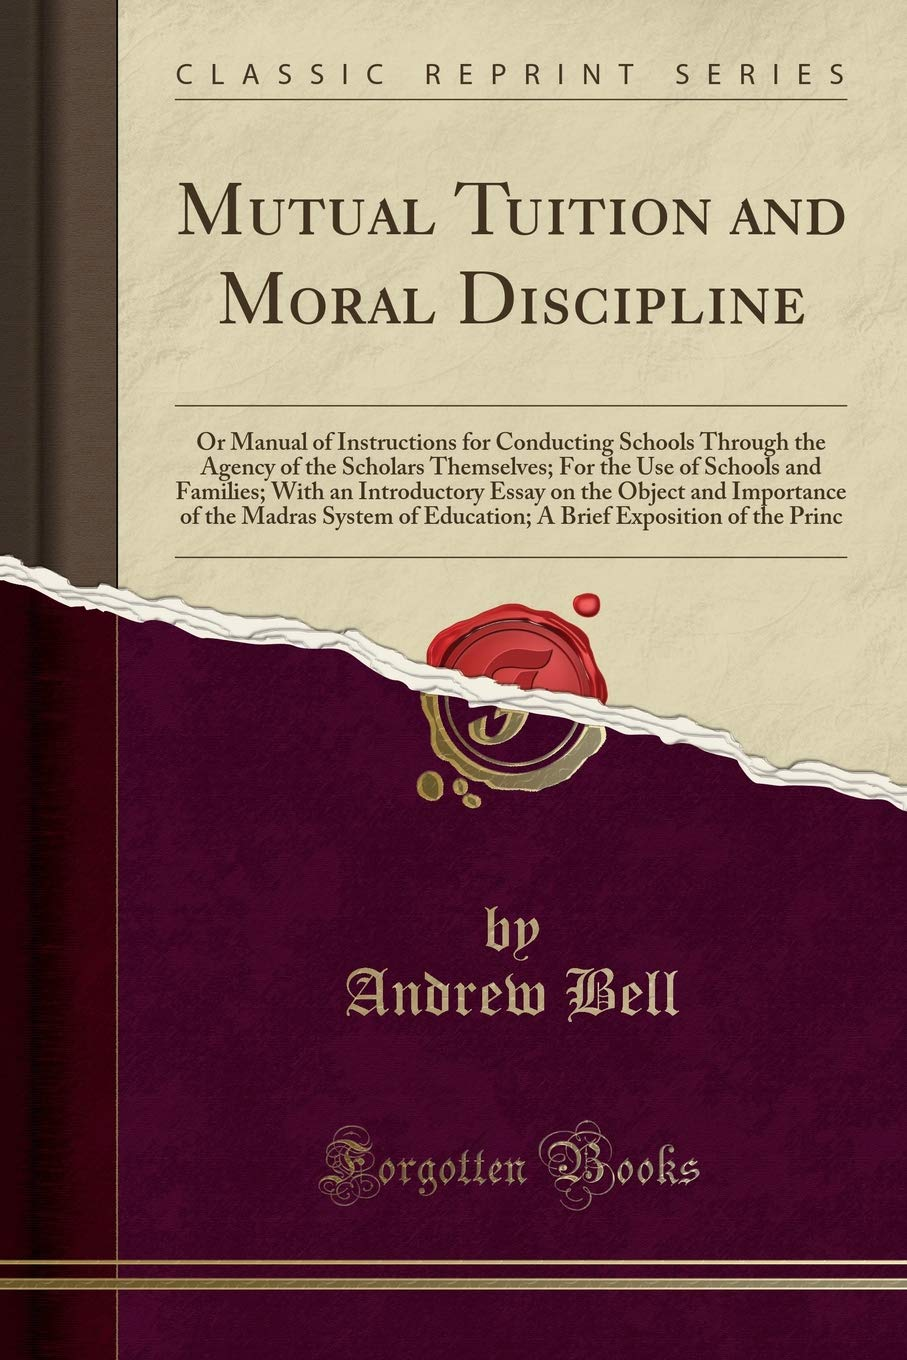 Mutual Tuition and Moral Discipline: Or Manual of Instructions for